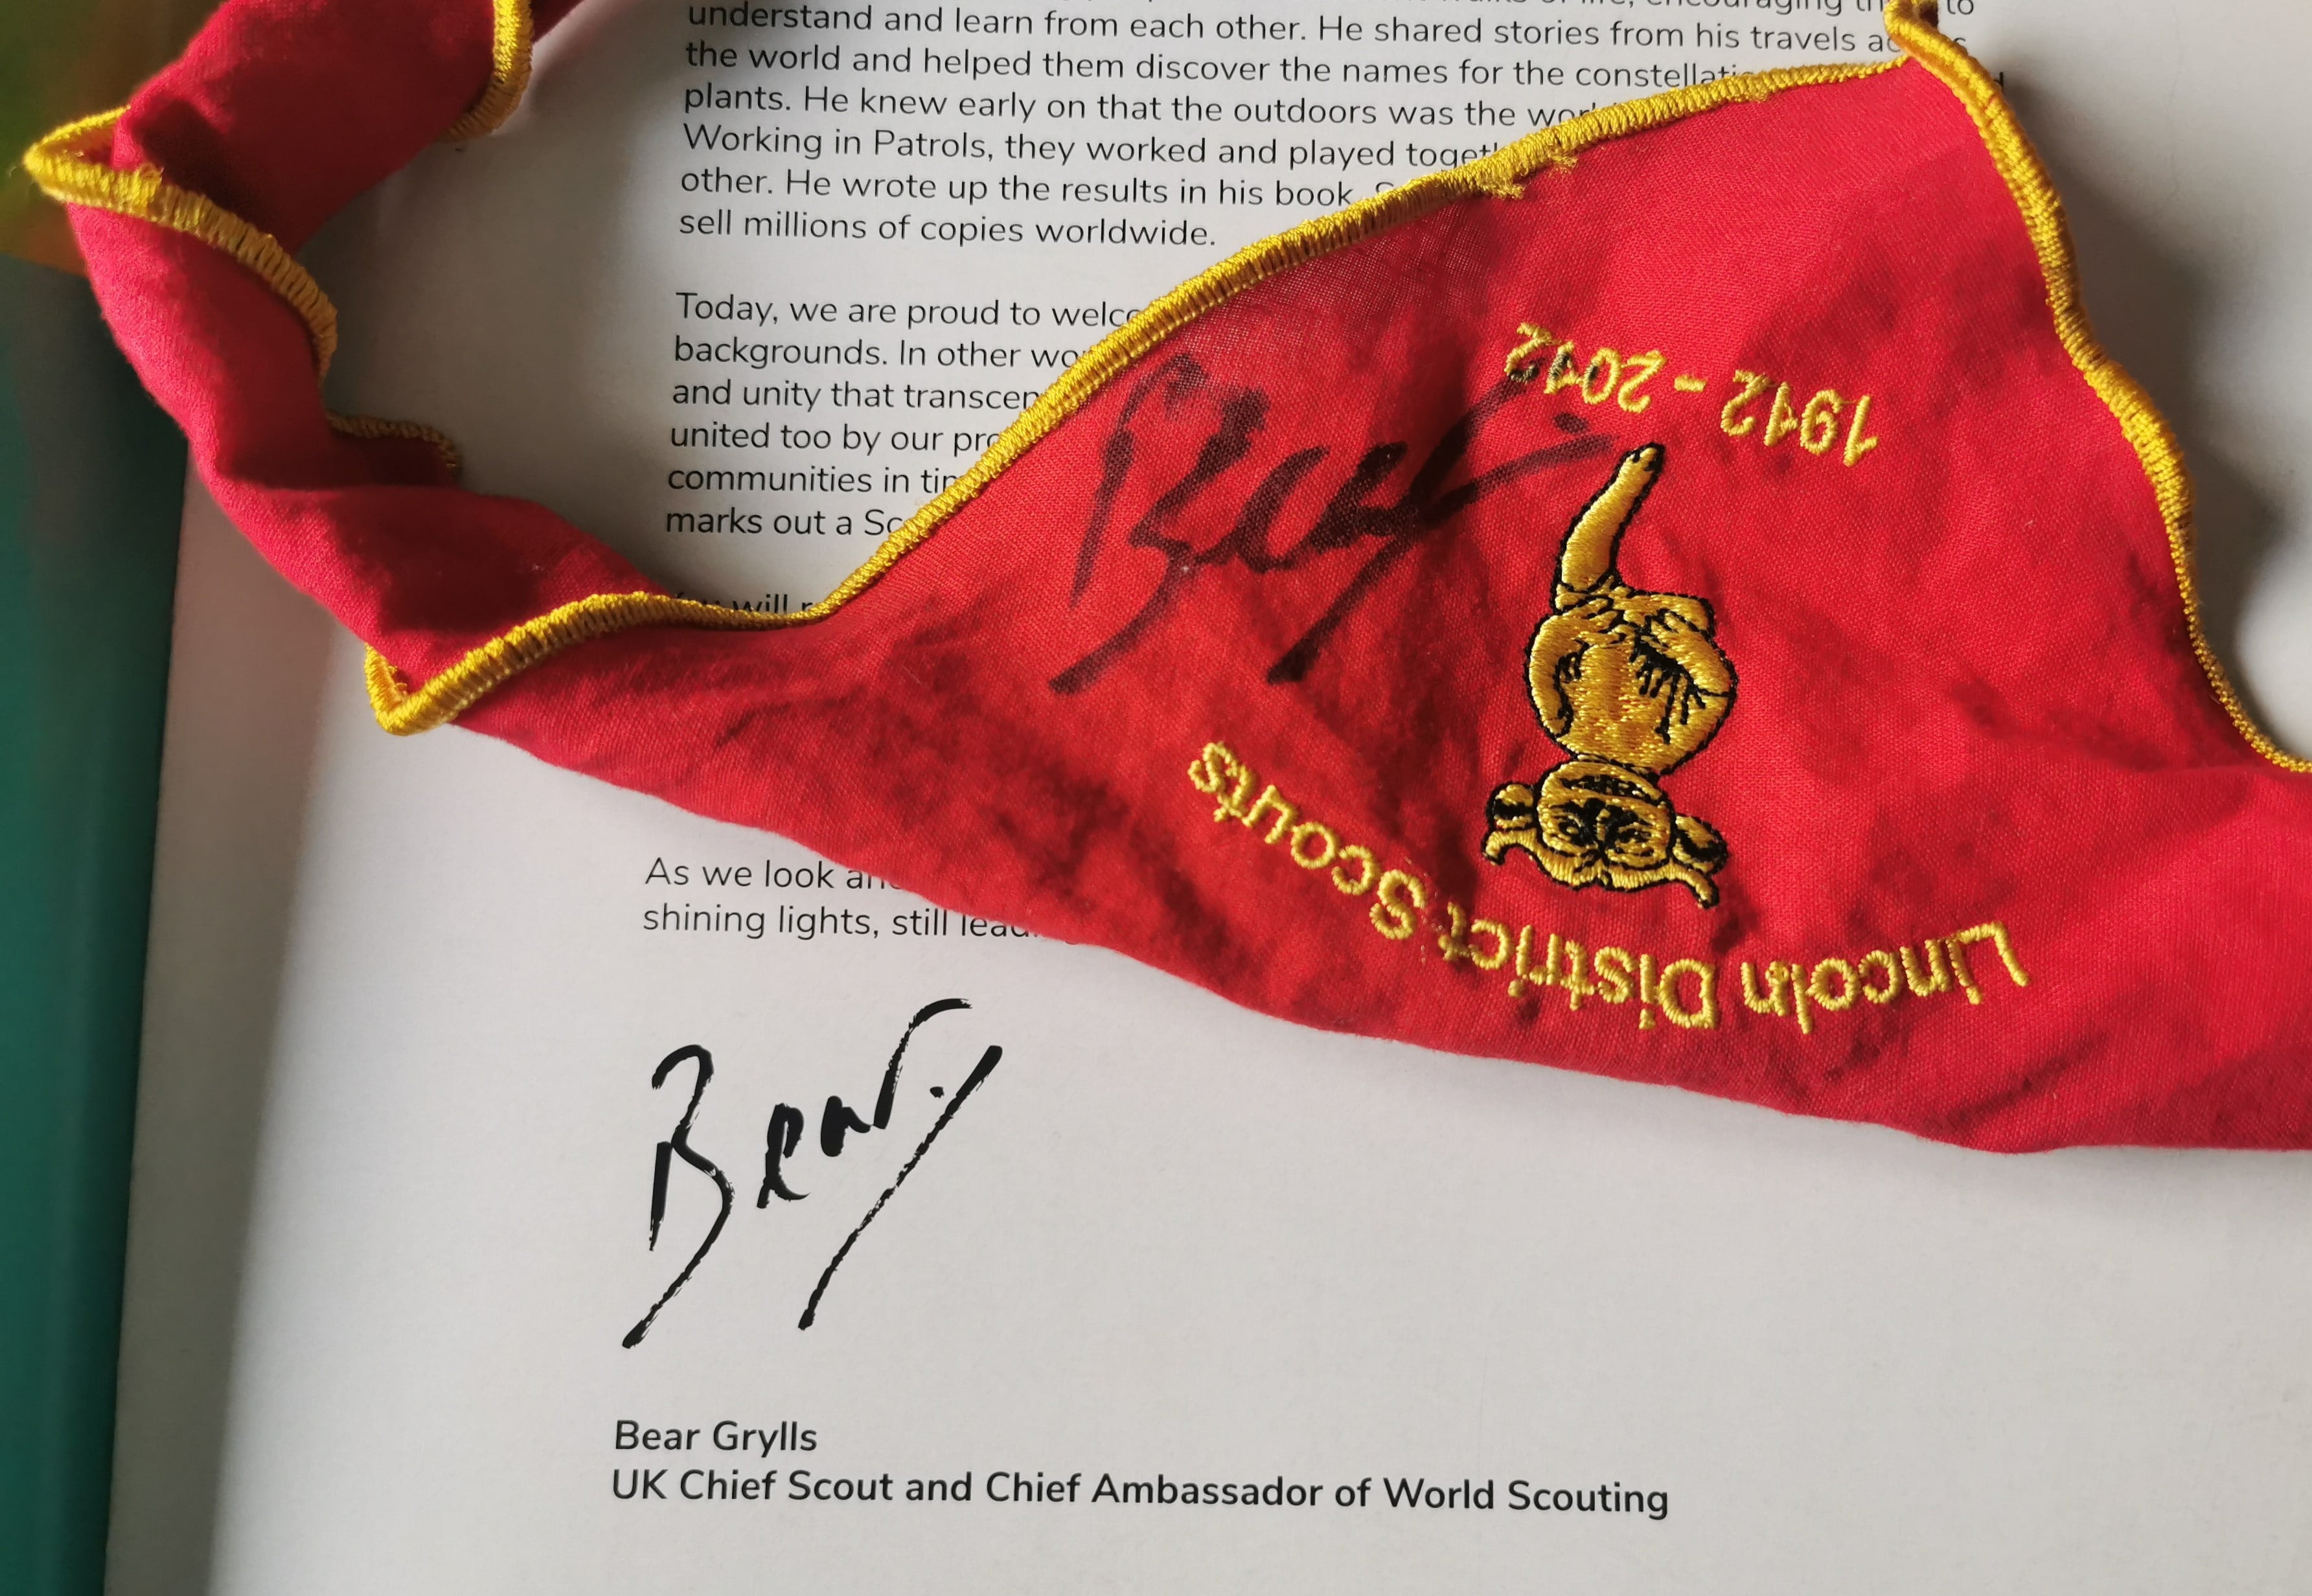 Bear Grylls signature on a necker and book